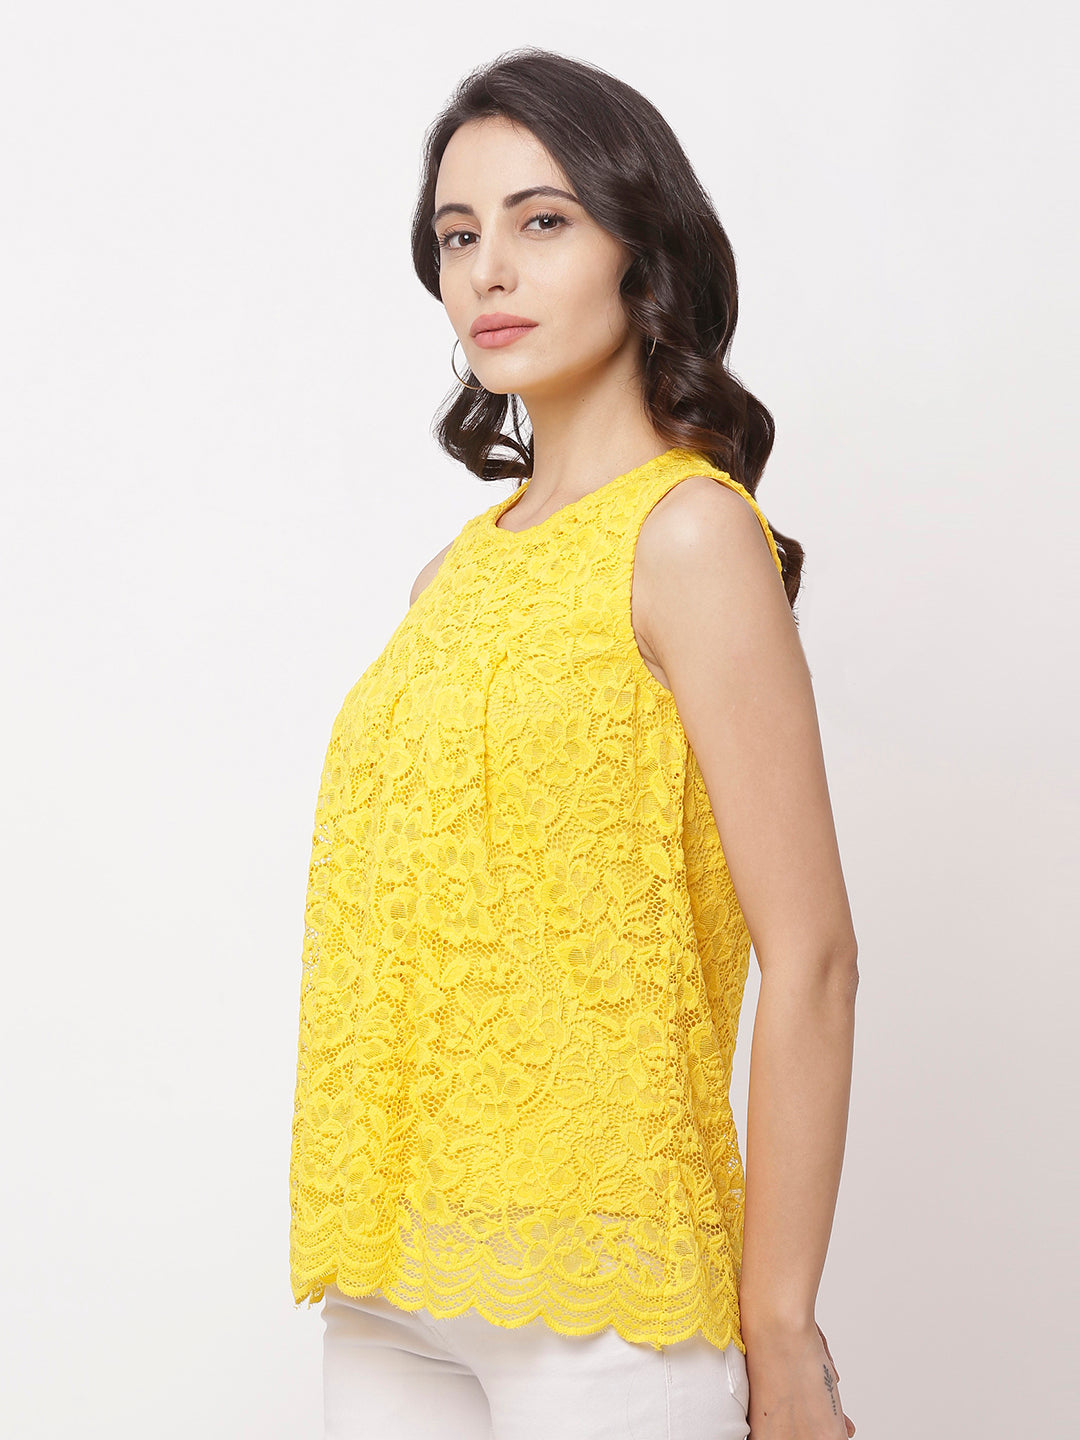 Globus Yellow Round Neck Self Design Top-2